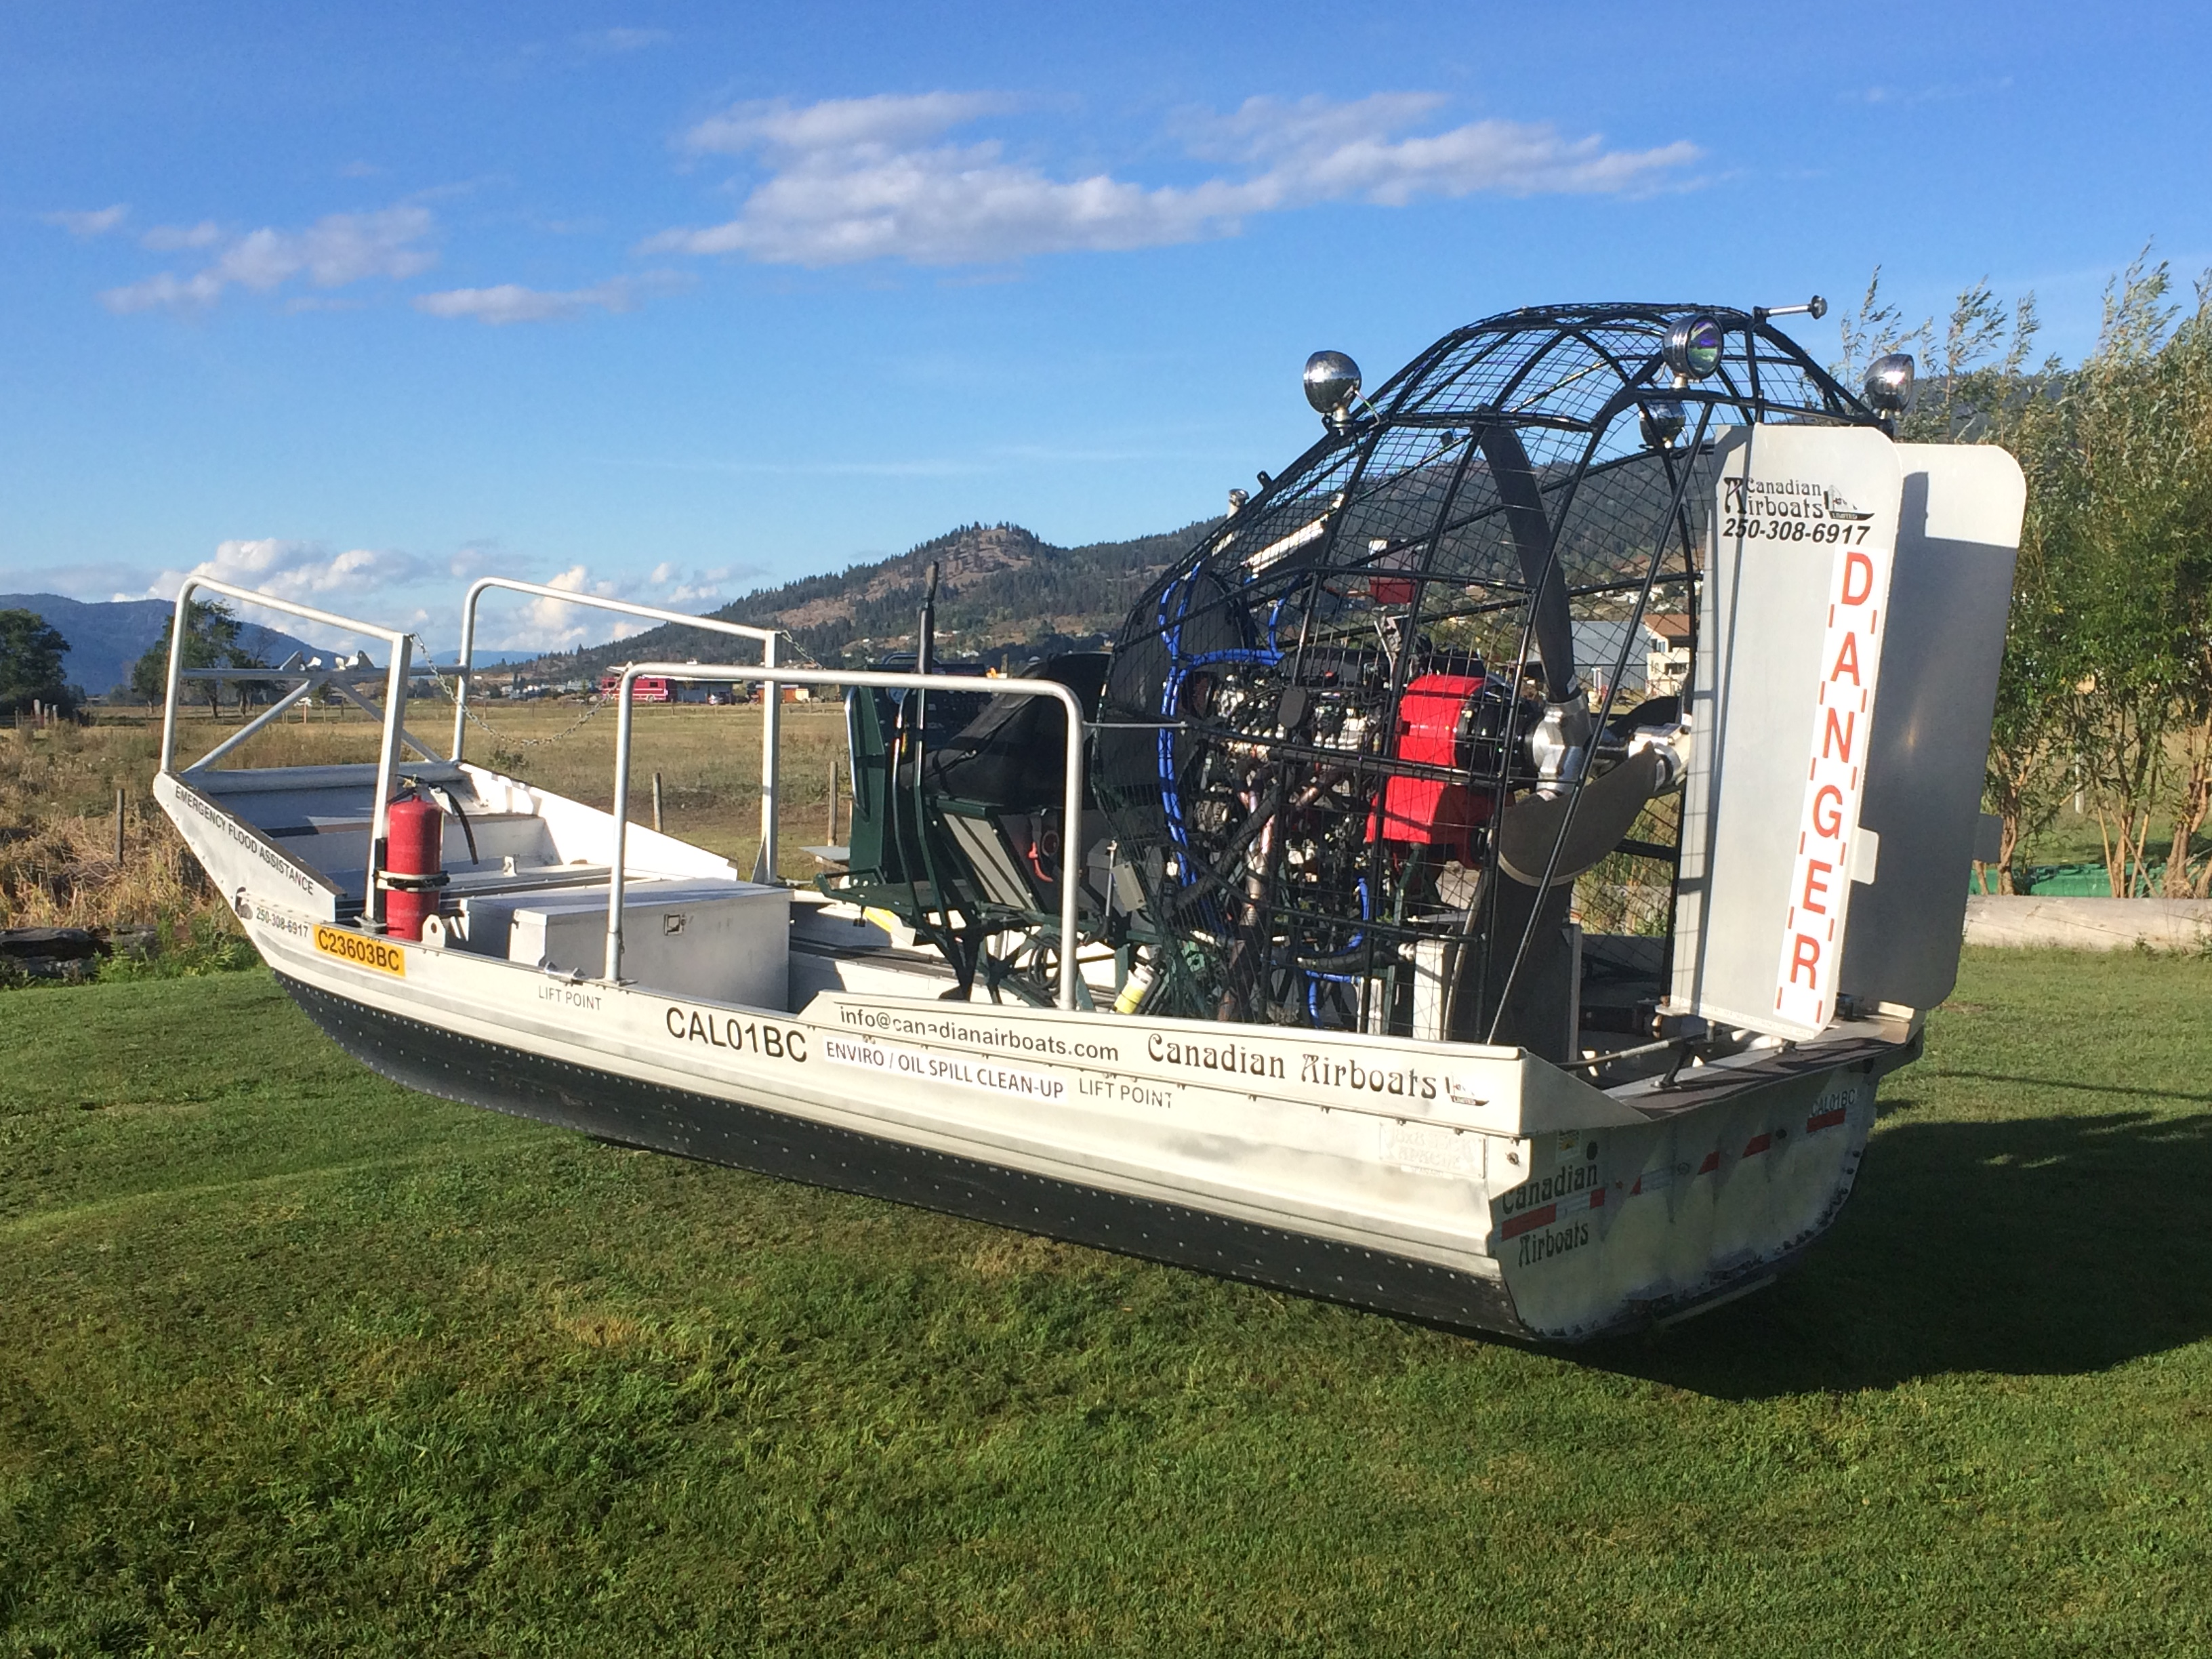 Airboat Engines And Drives